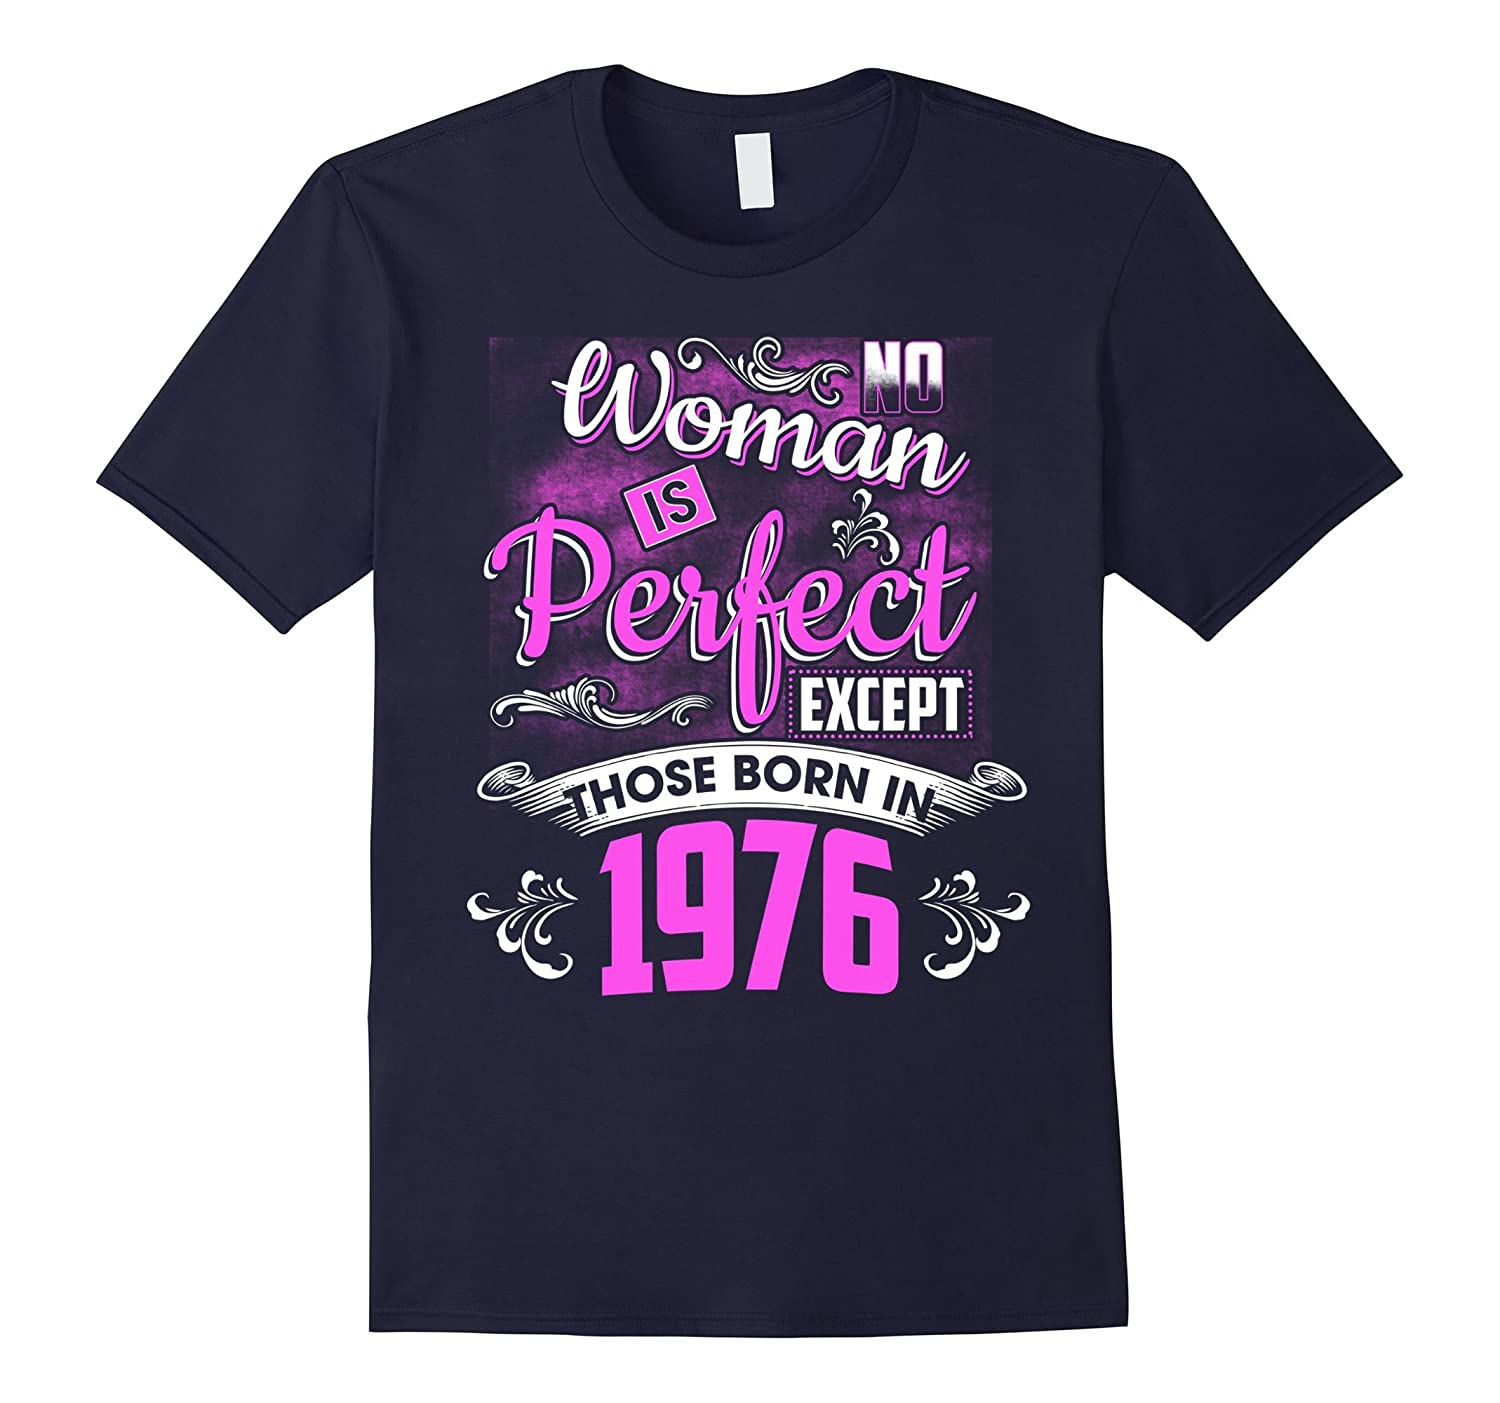 Amazing Shirt Idea For Women Funny Gift For 41st Birthday-Vaci